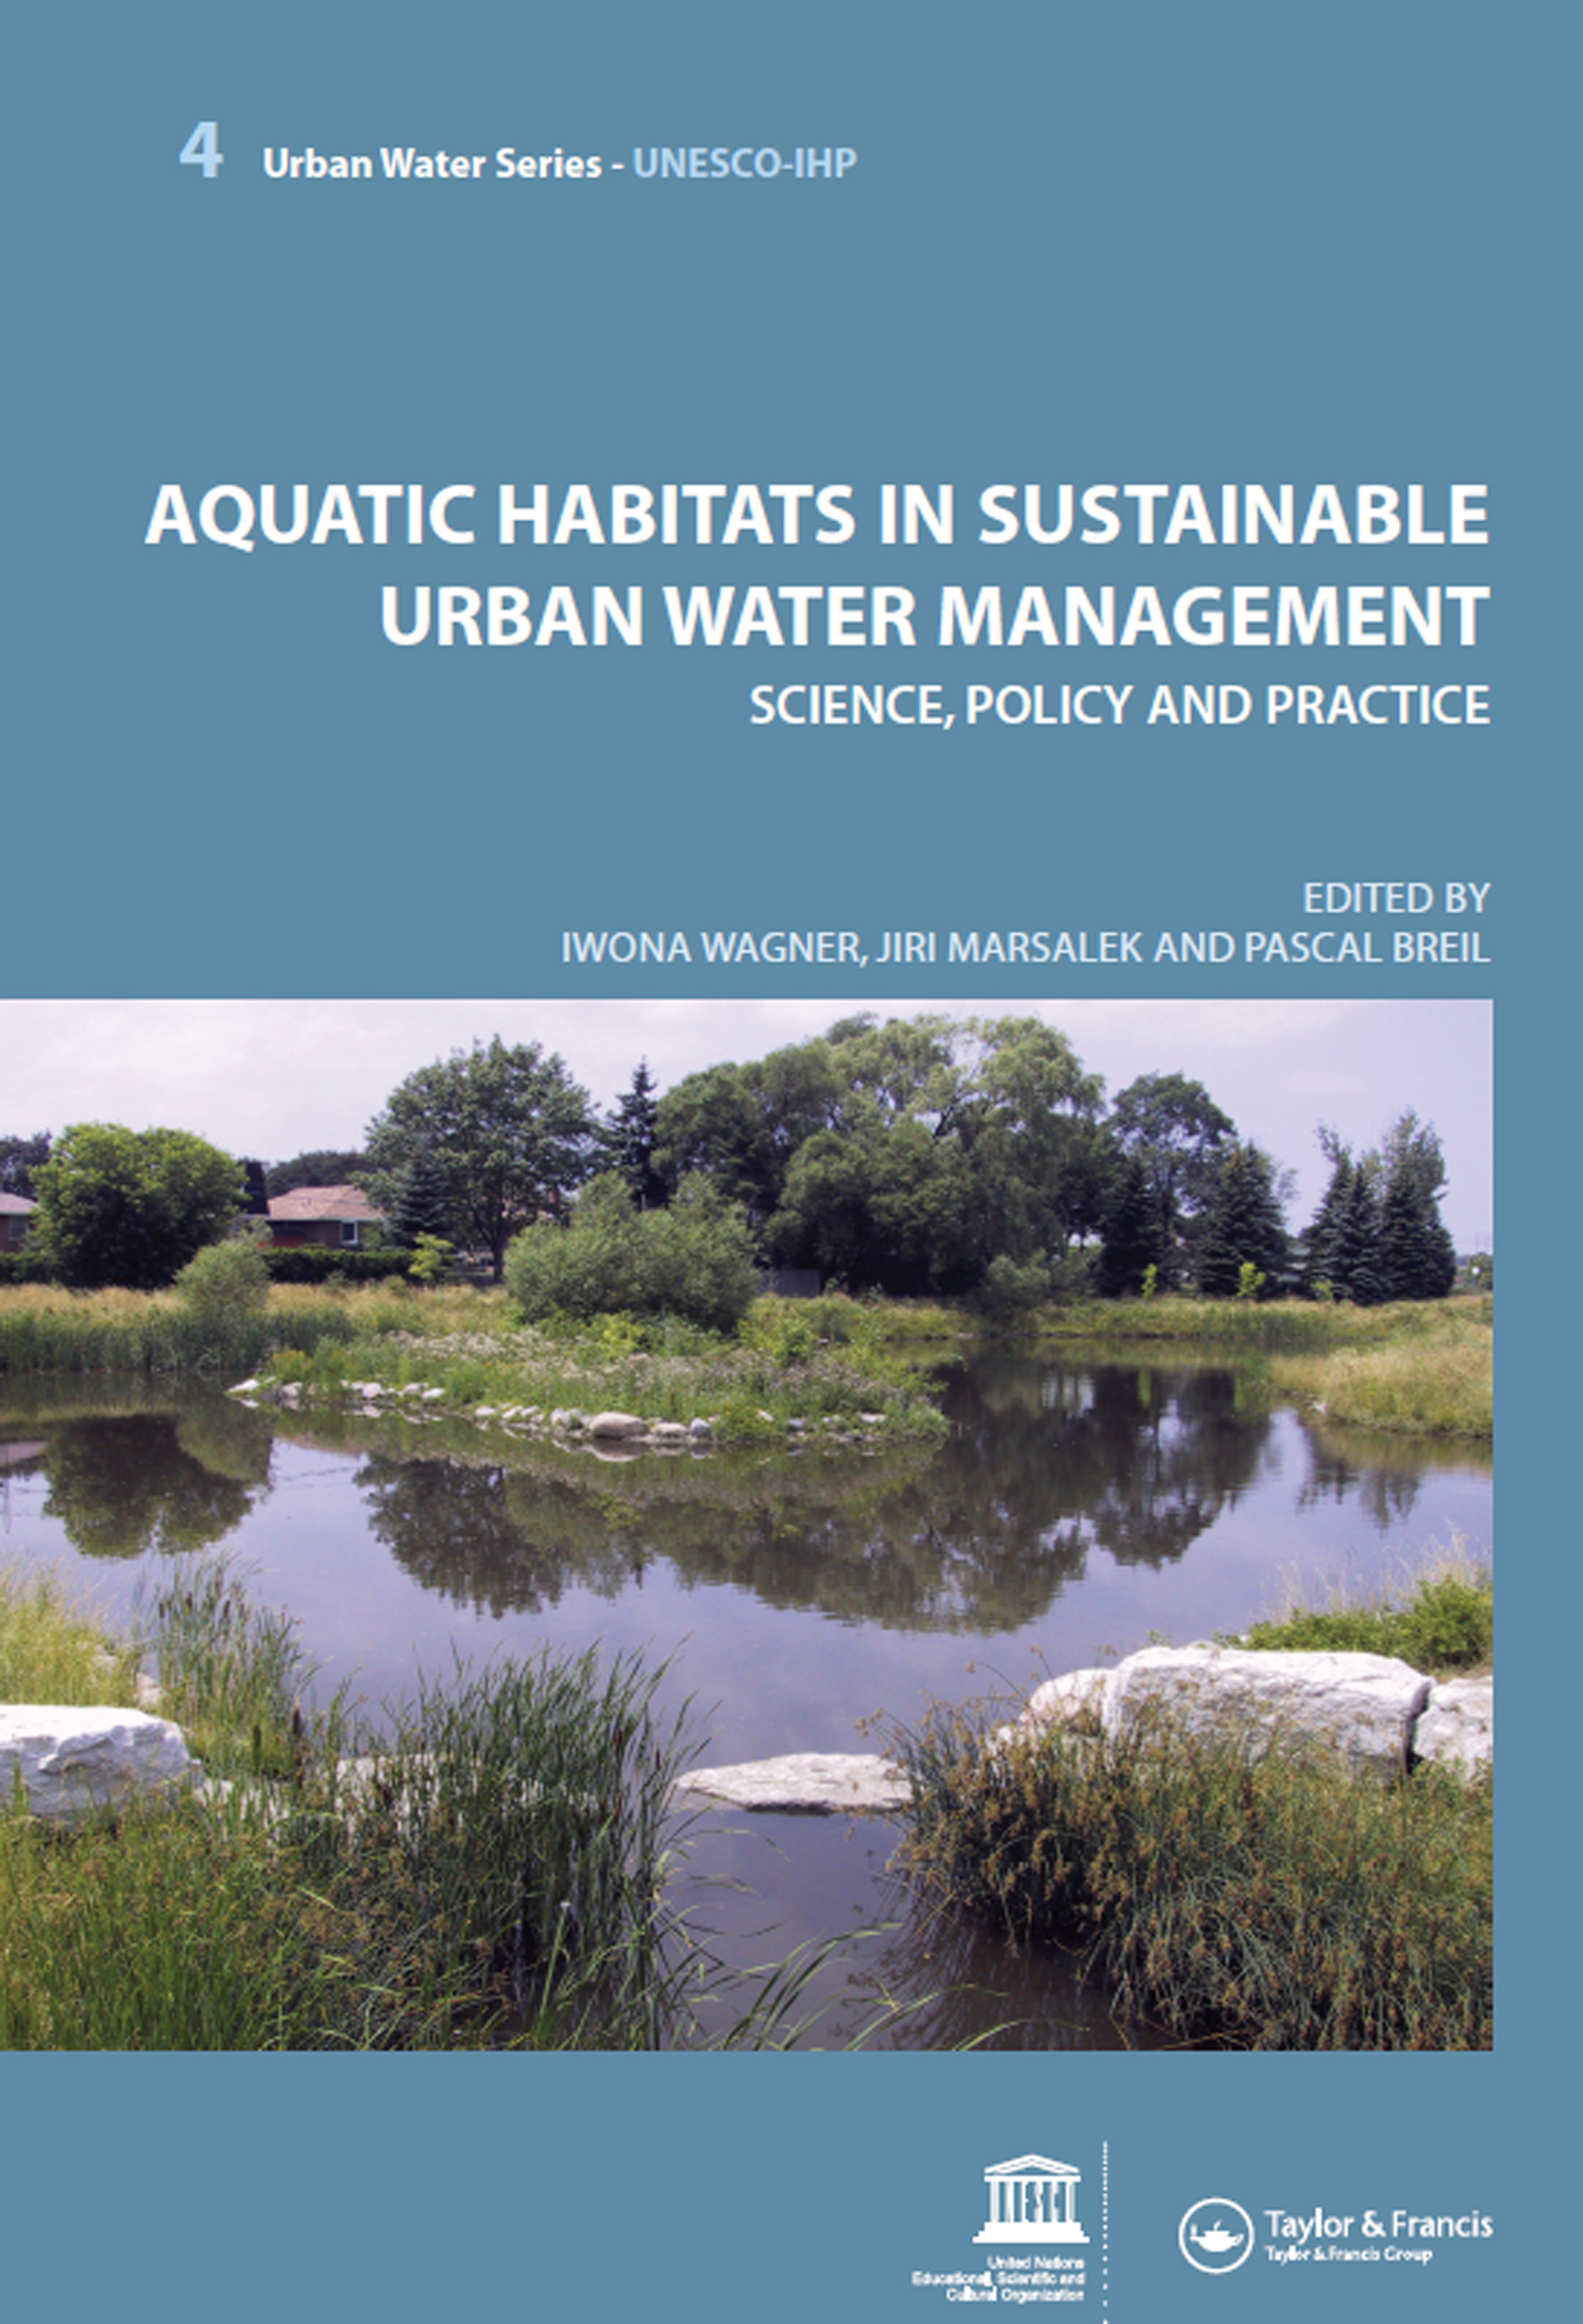 Aquatic Habitats in Sustainable Urban Water Management: Urban Water Series - UNESCO-IHP book cover